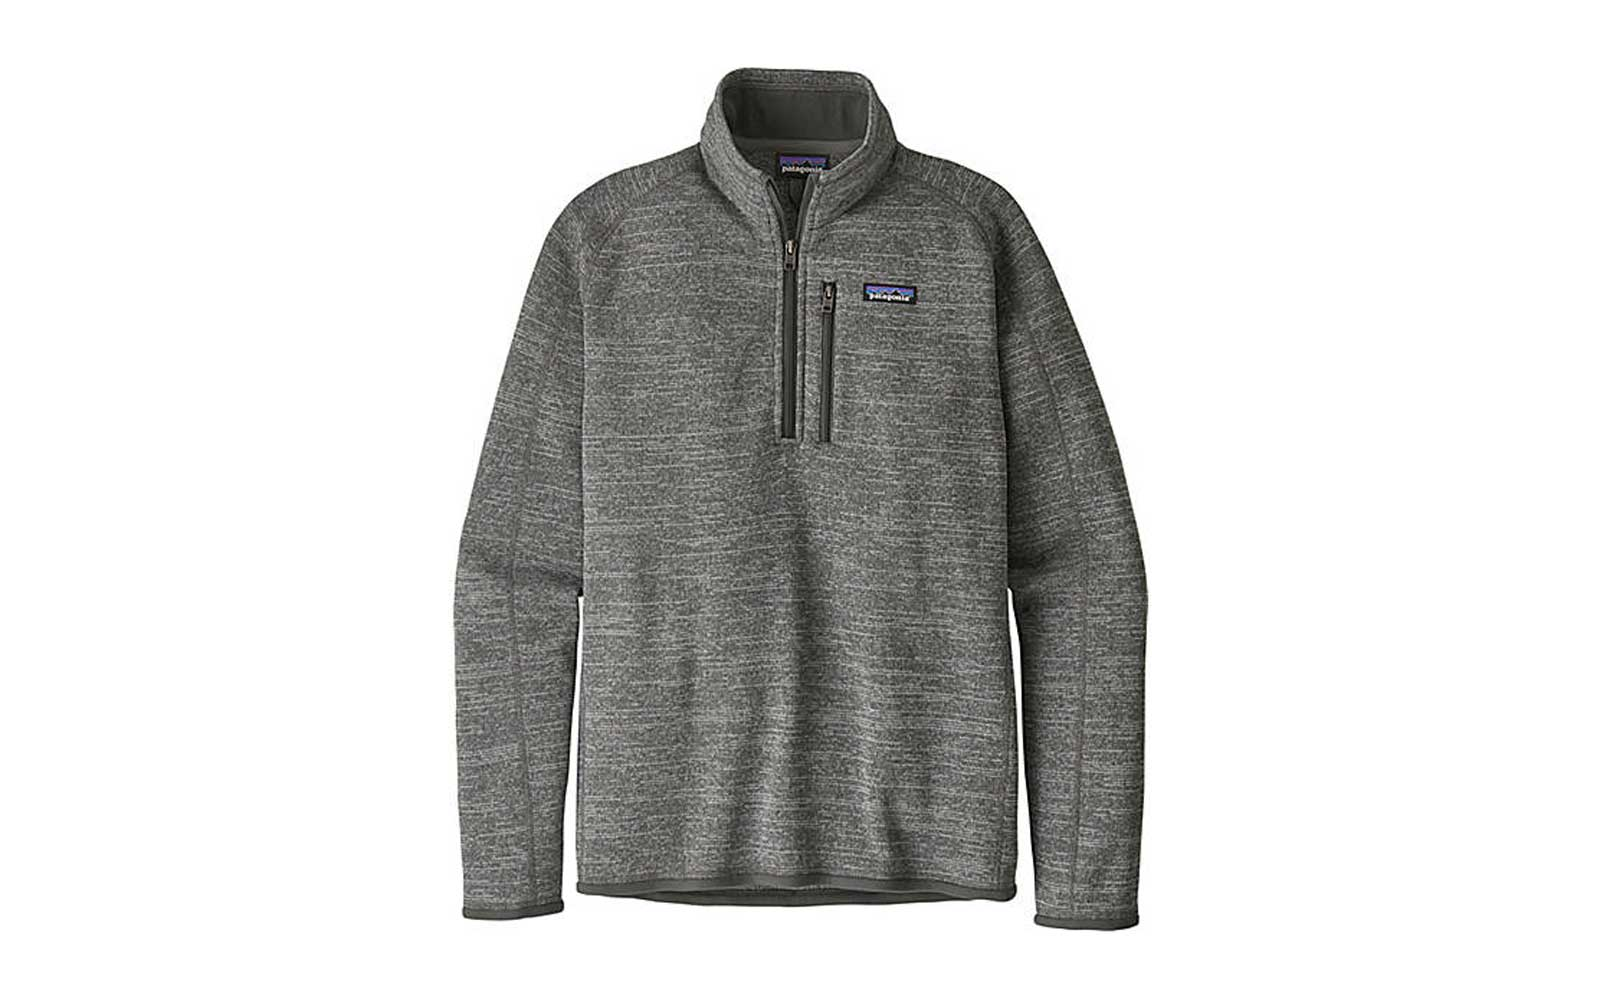 Men's Grey Patagonia 1/4 Zip Jacket